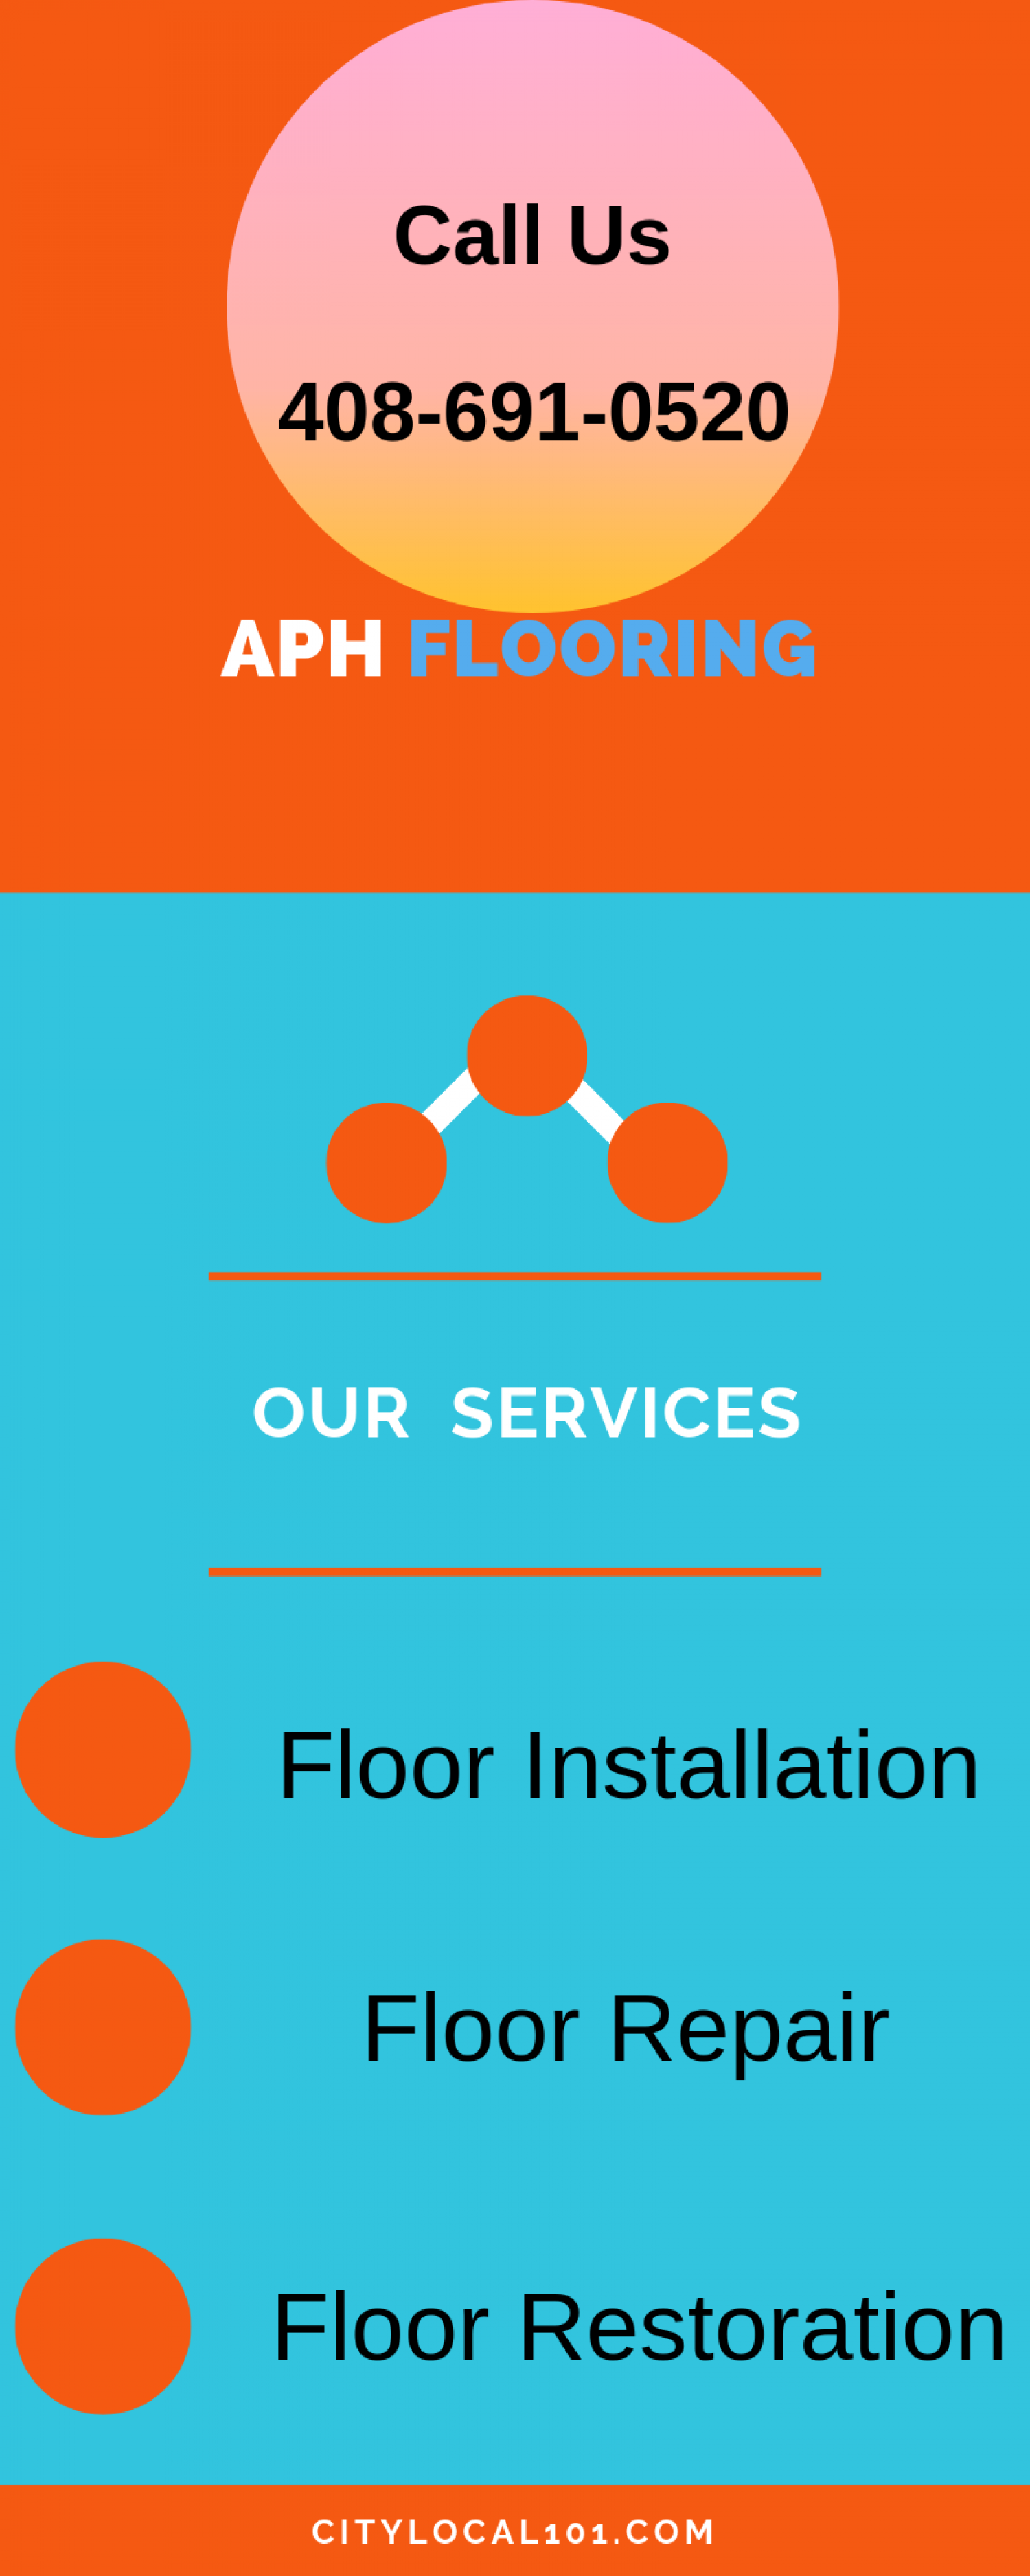 steps of house floor installation Infographic